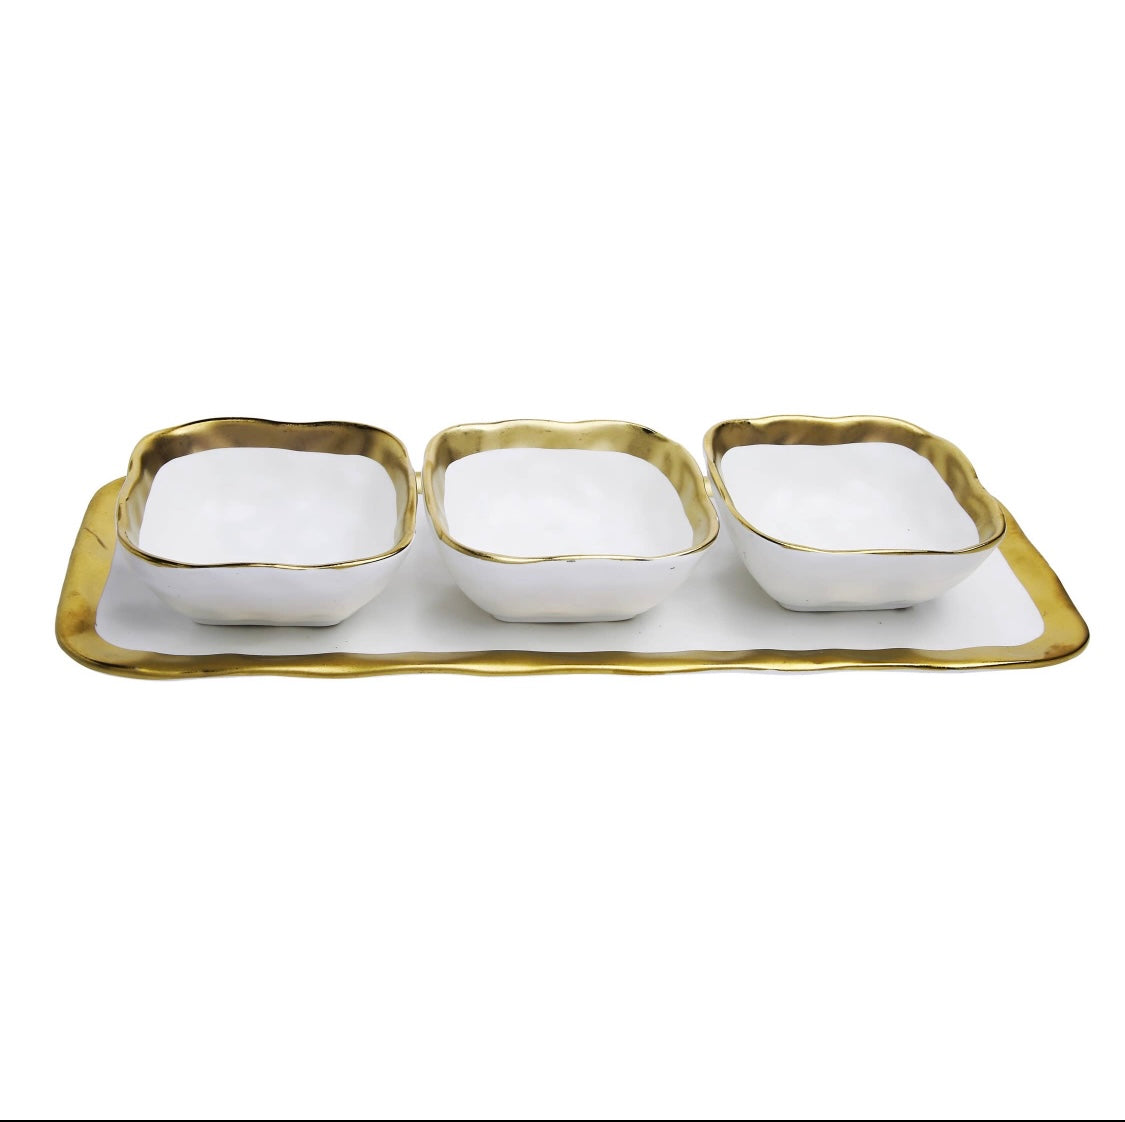 3 Square Bowl with Tray Dish